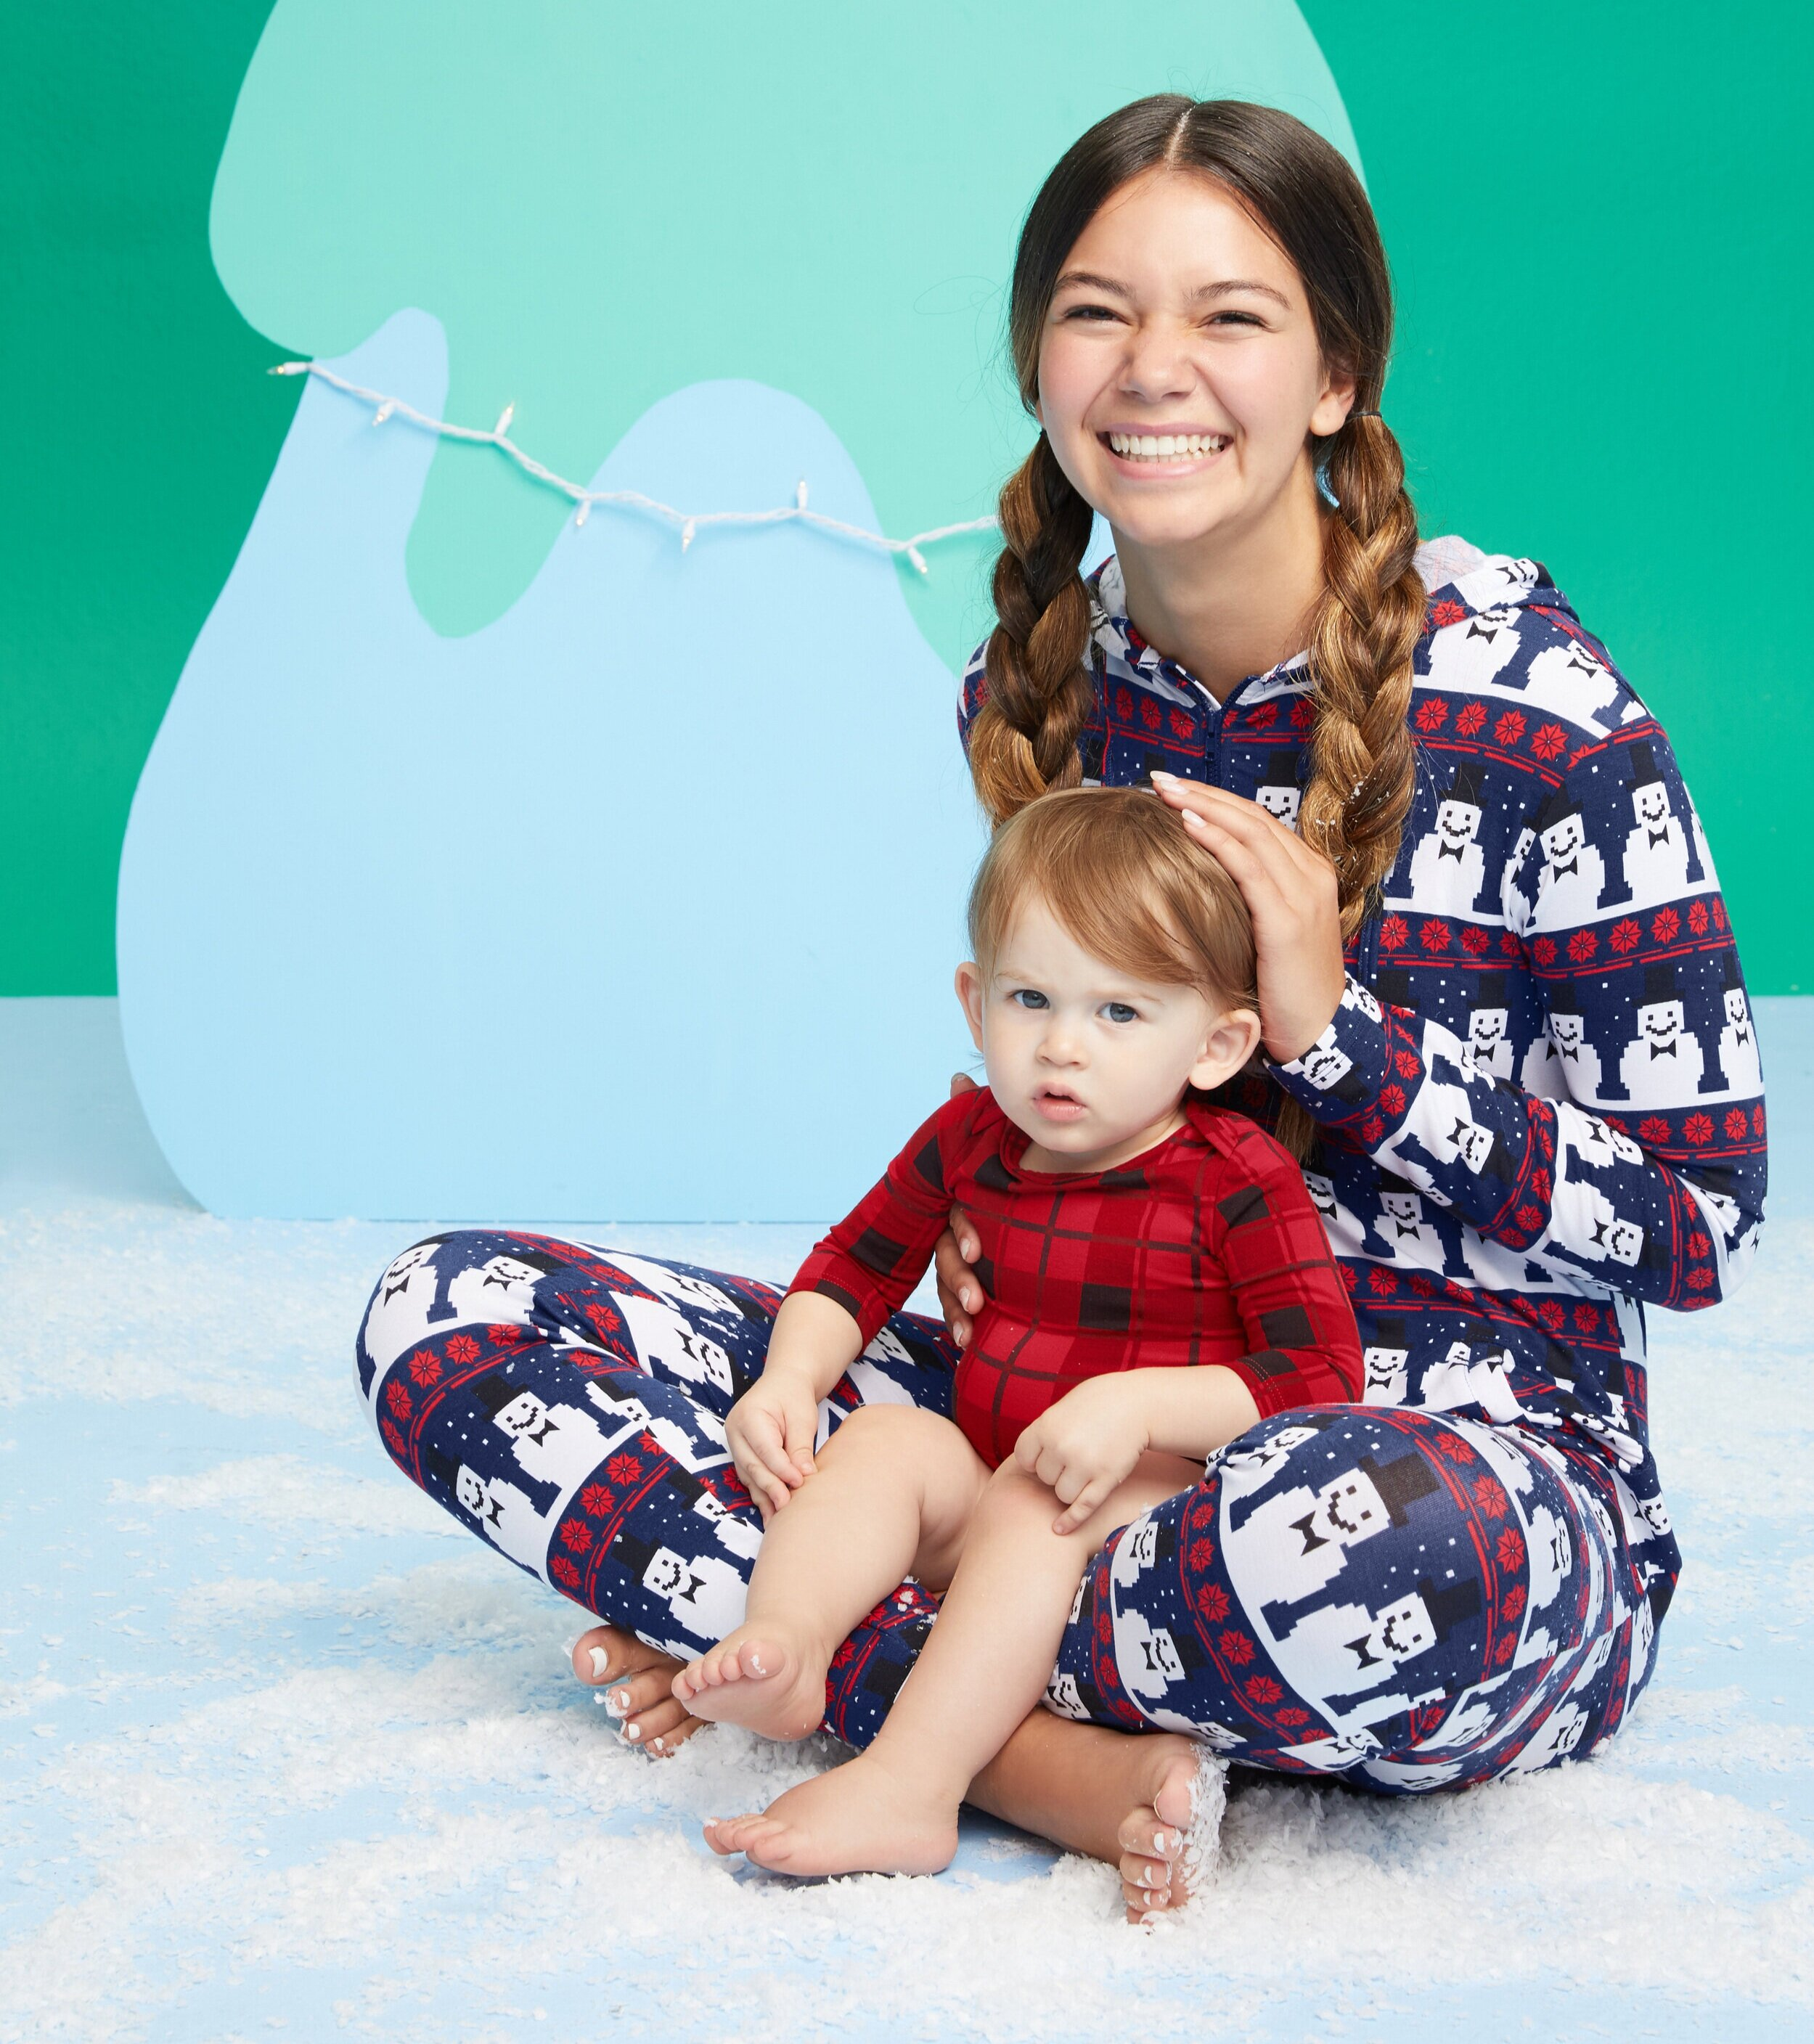 Gifts for the Fam - And we mean the whole fam, including babies. We now have a Baby Bodysuit available for all the tiny humans in your life. We decided the best gift ever is the gift of matching, so get your whole fam in on the fun by looking adorably soft and matchy all at once.